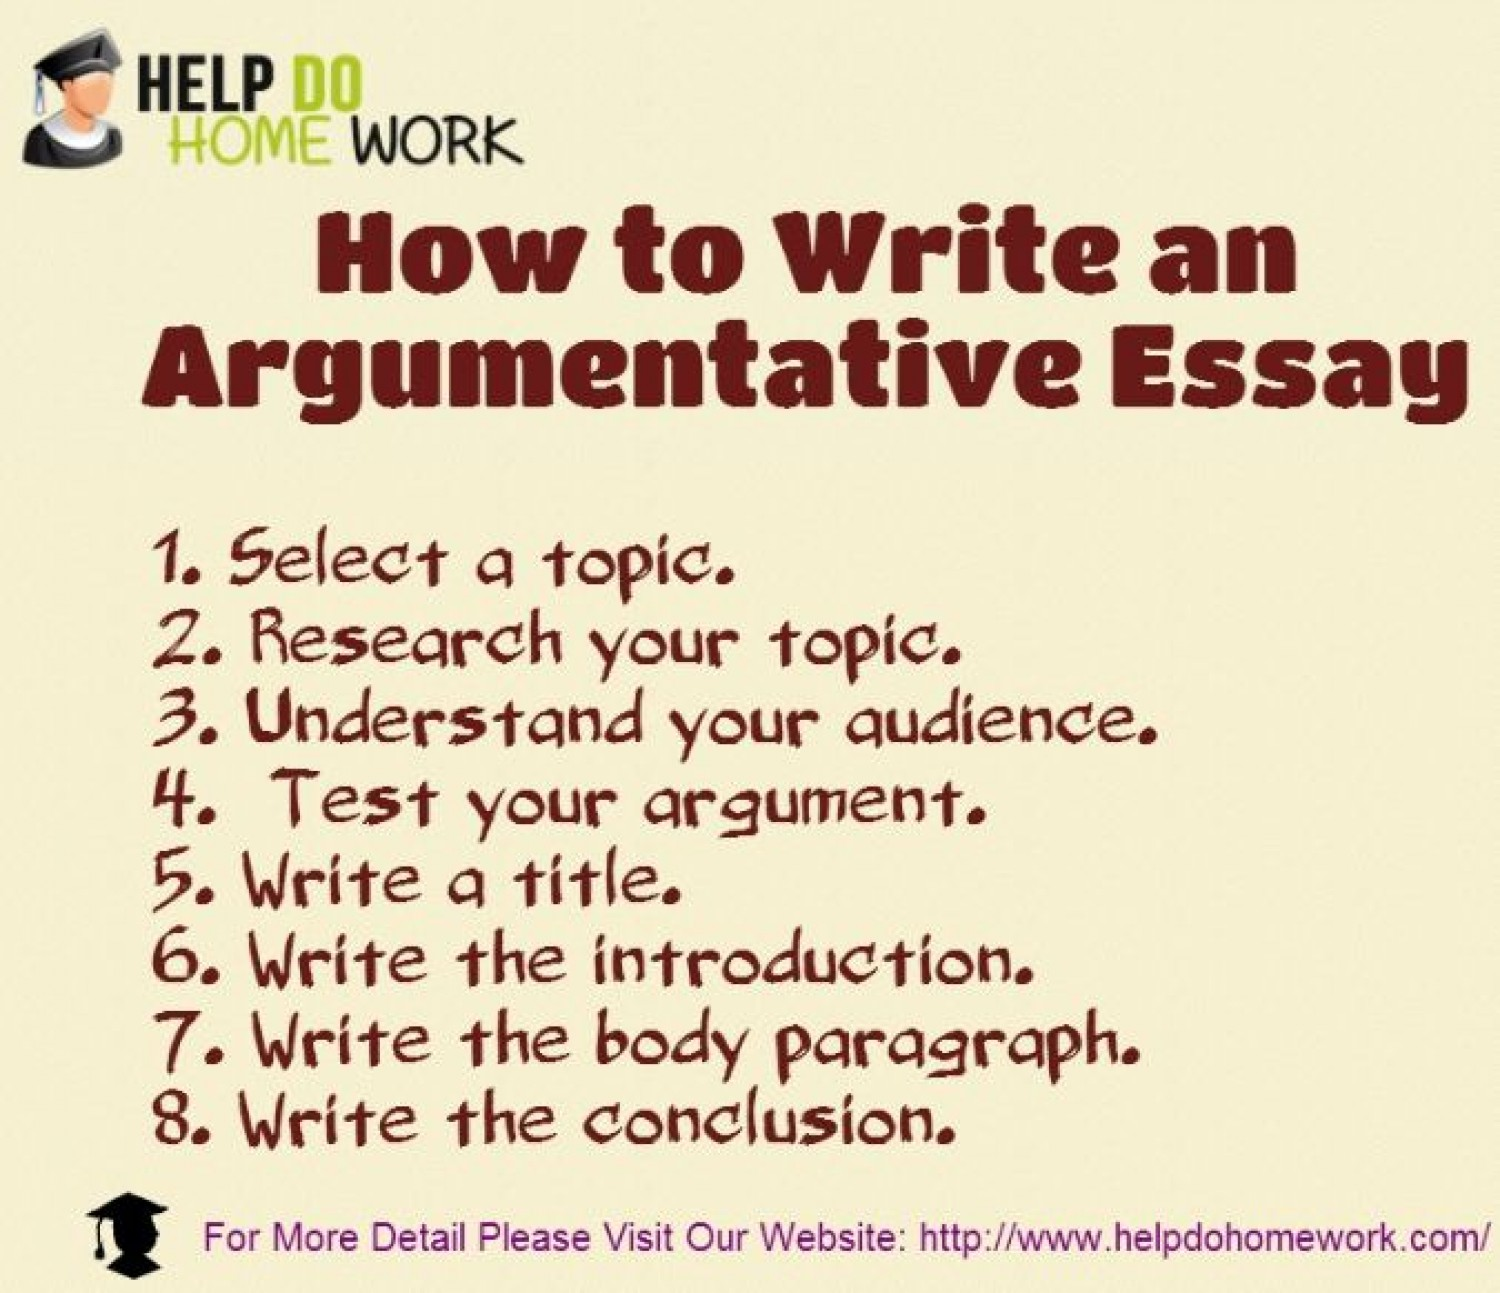 003 Utilize Functional And Utilitarian Approach For Your Academic Work 53b0d9bea1f6e W1500 Jpg Essay Example Steps Writing An Impressive Argumentative Second Step In To Middle School Pdf How Write 9 Easy Full